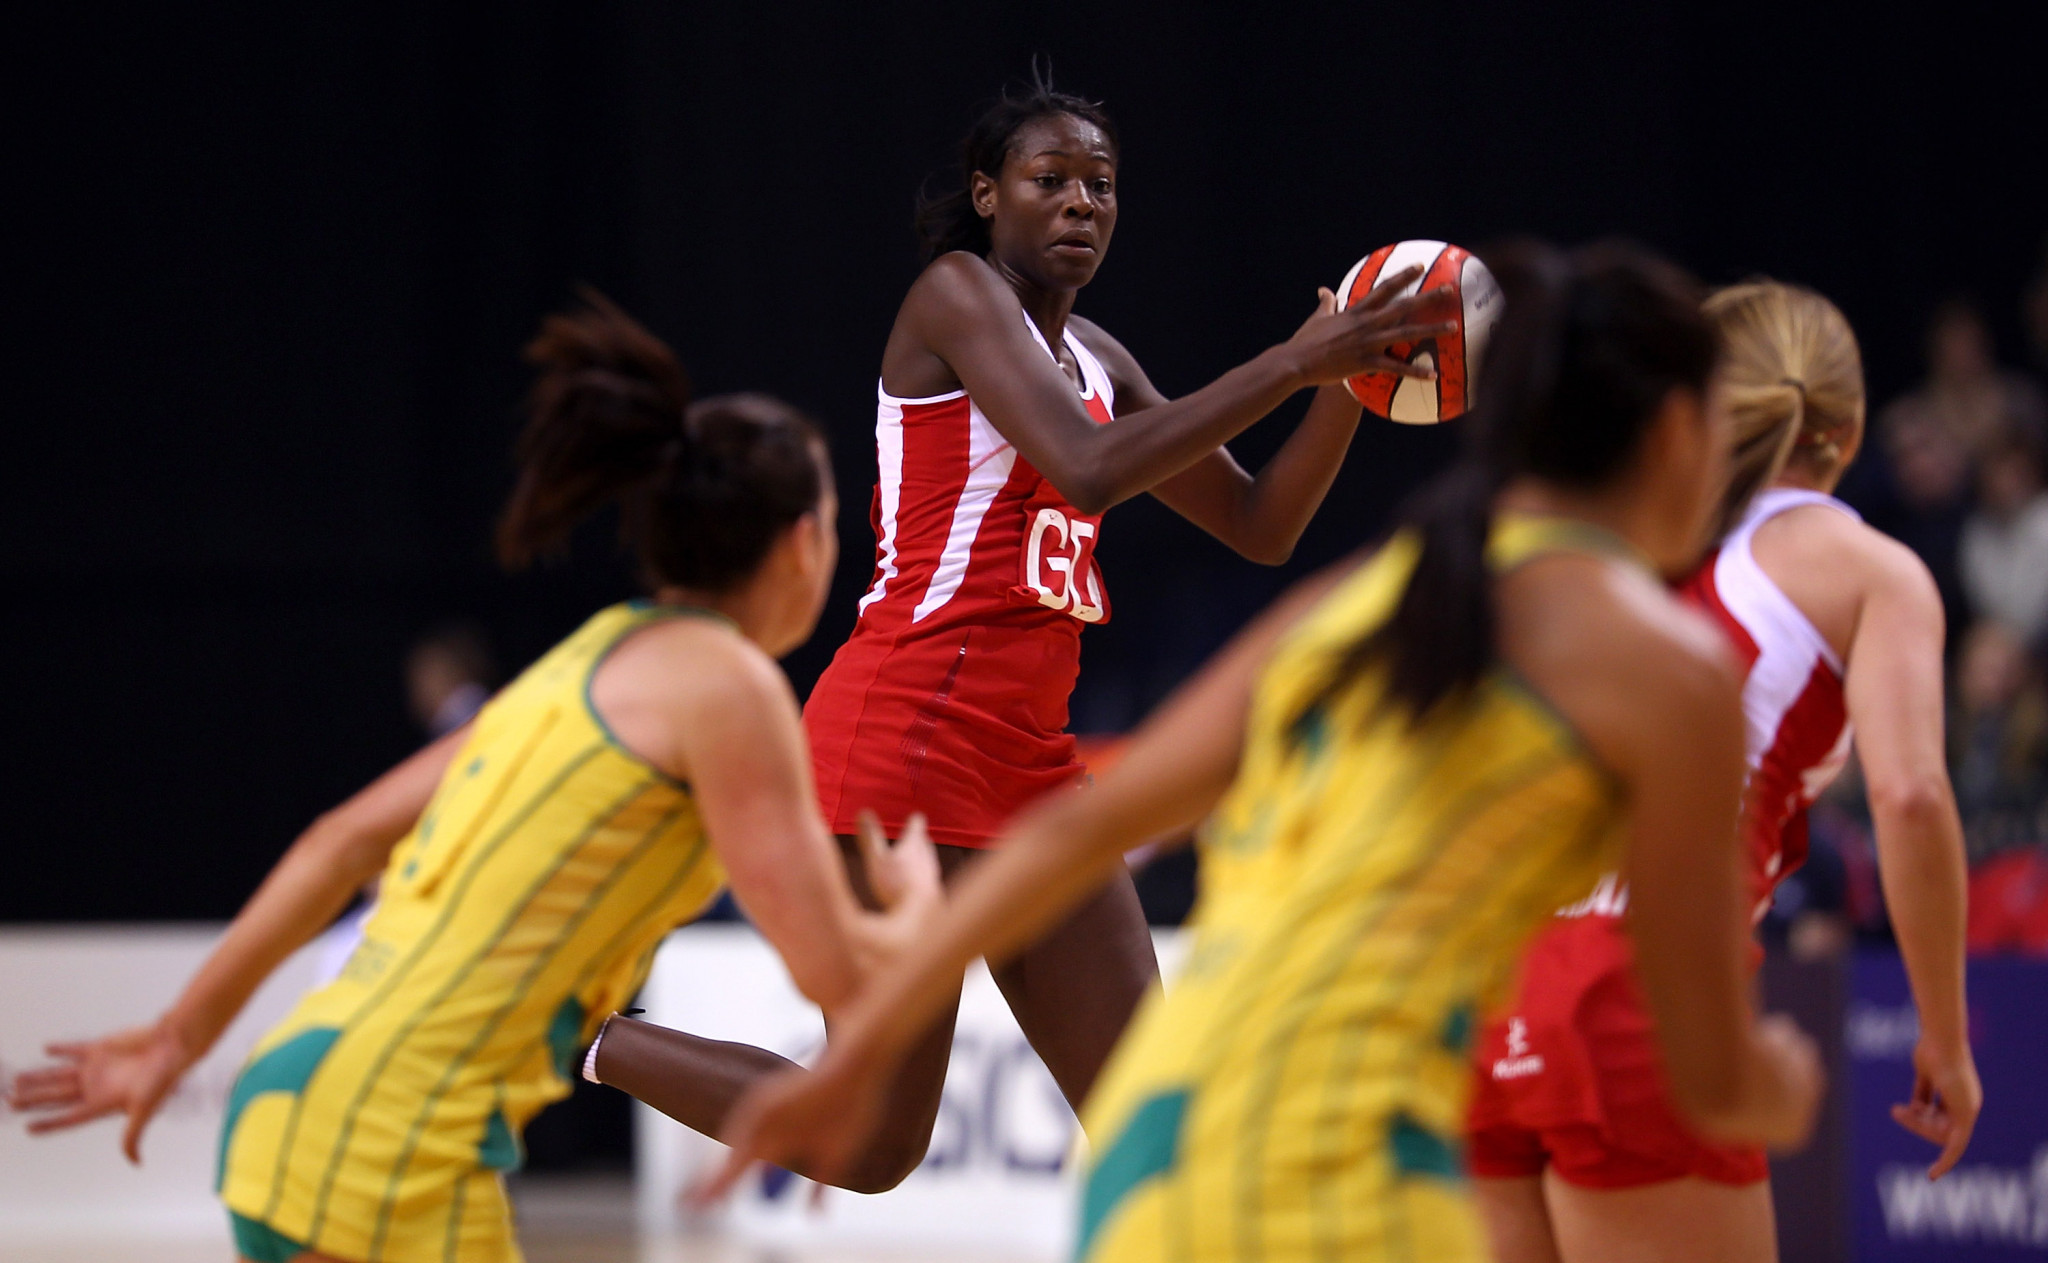 Sonia Mkoloma was capped 123 times by England ©Getty Images